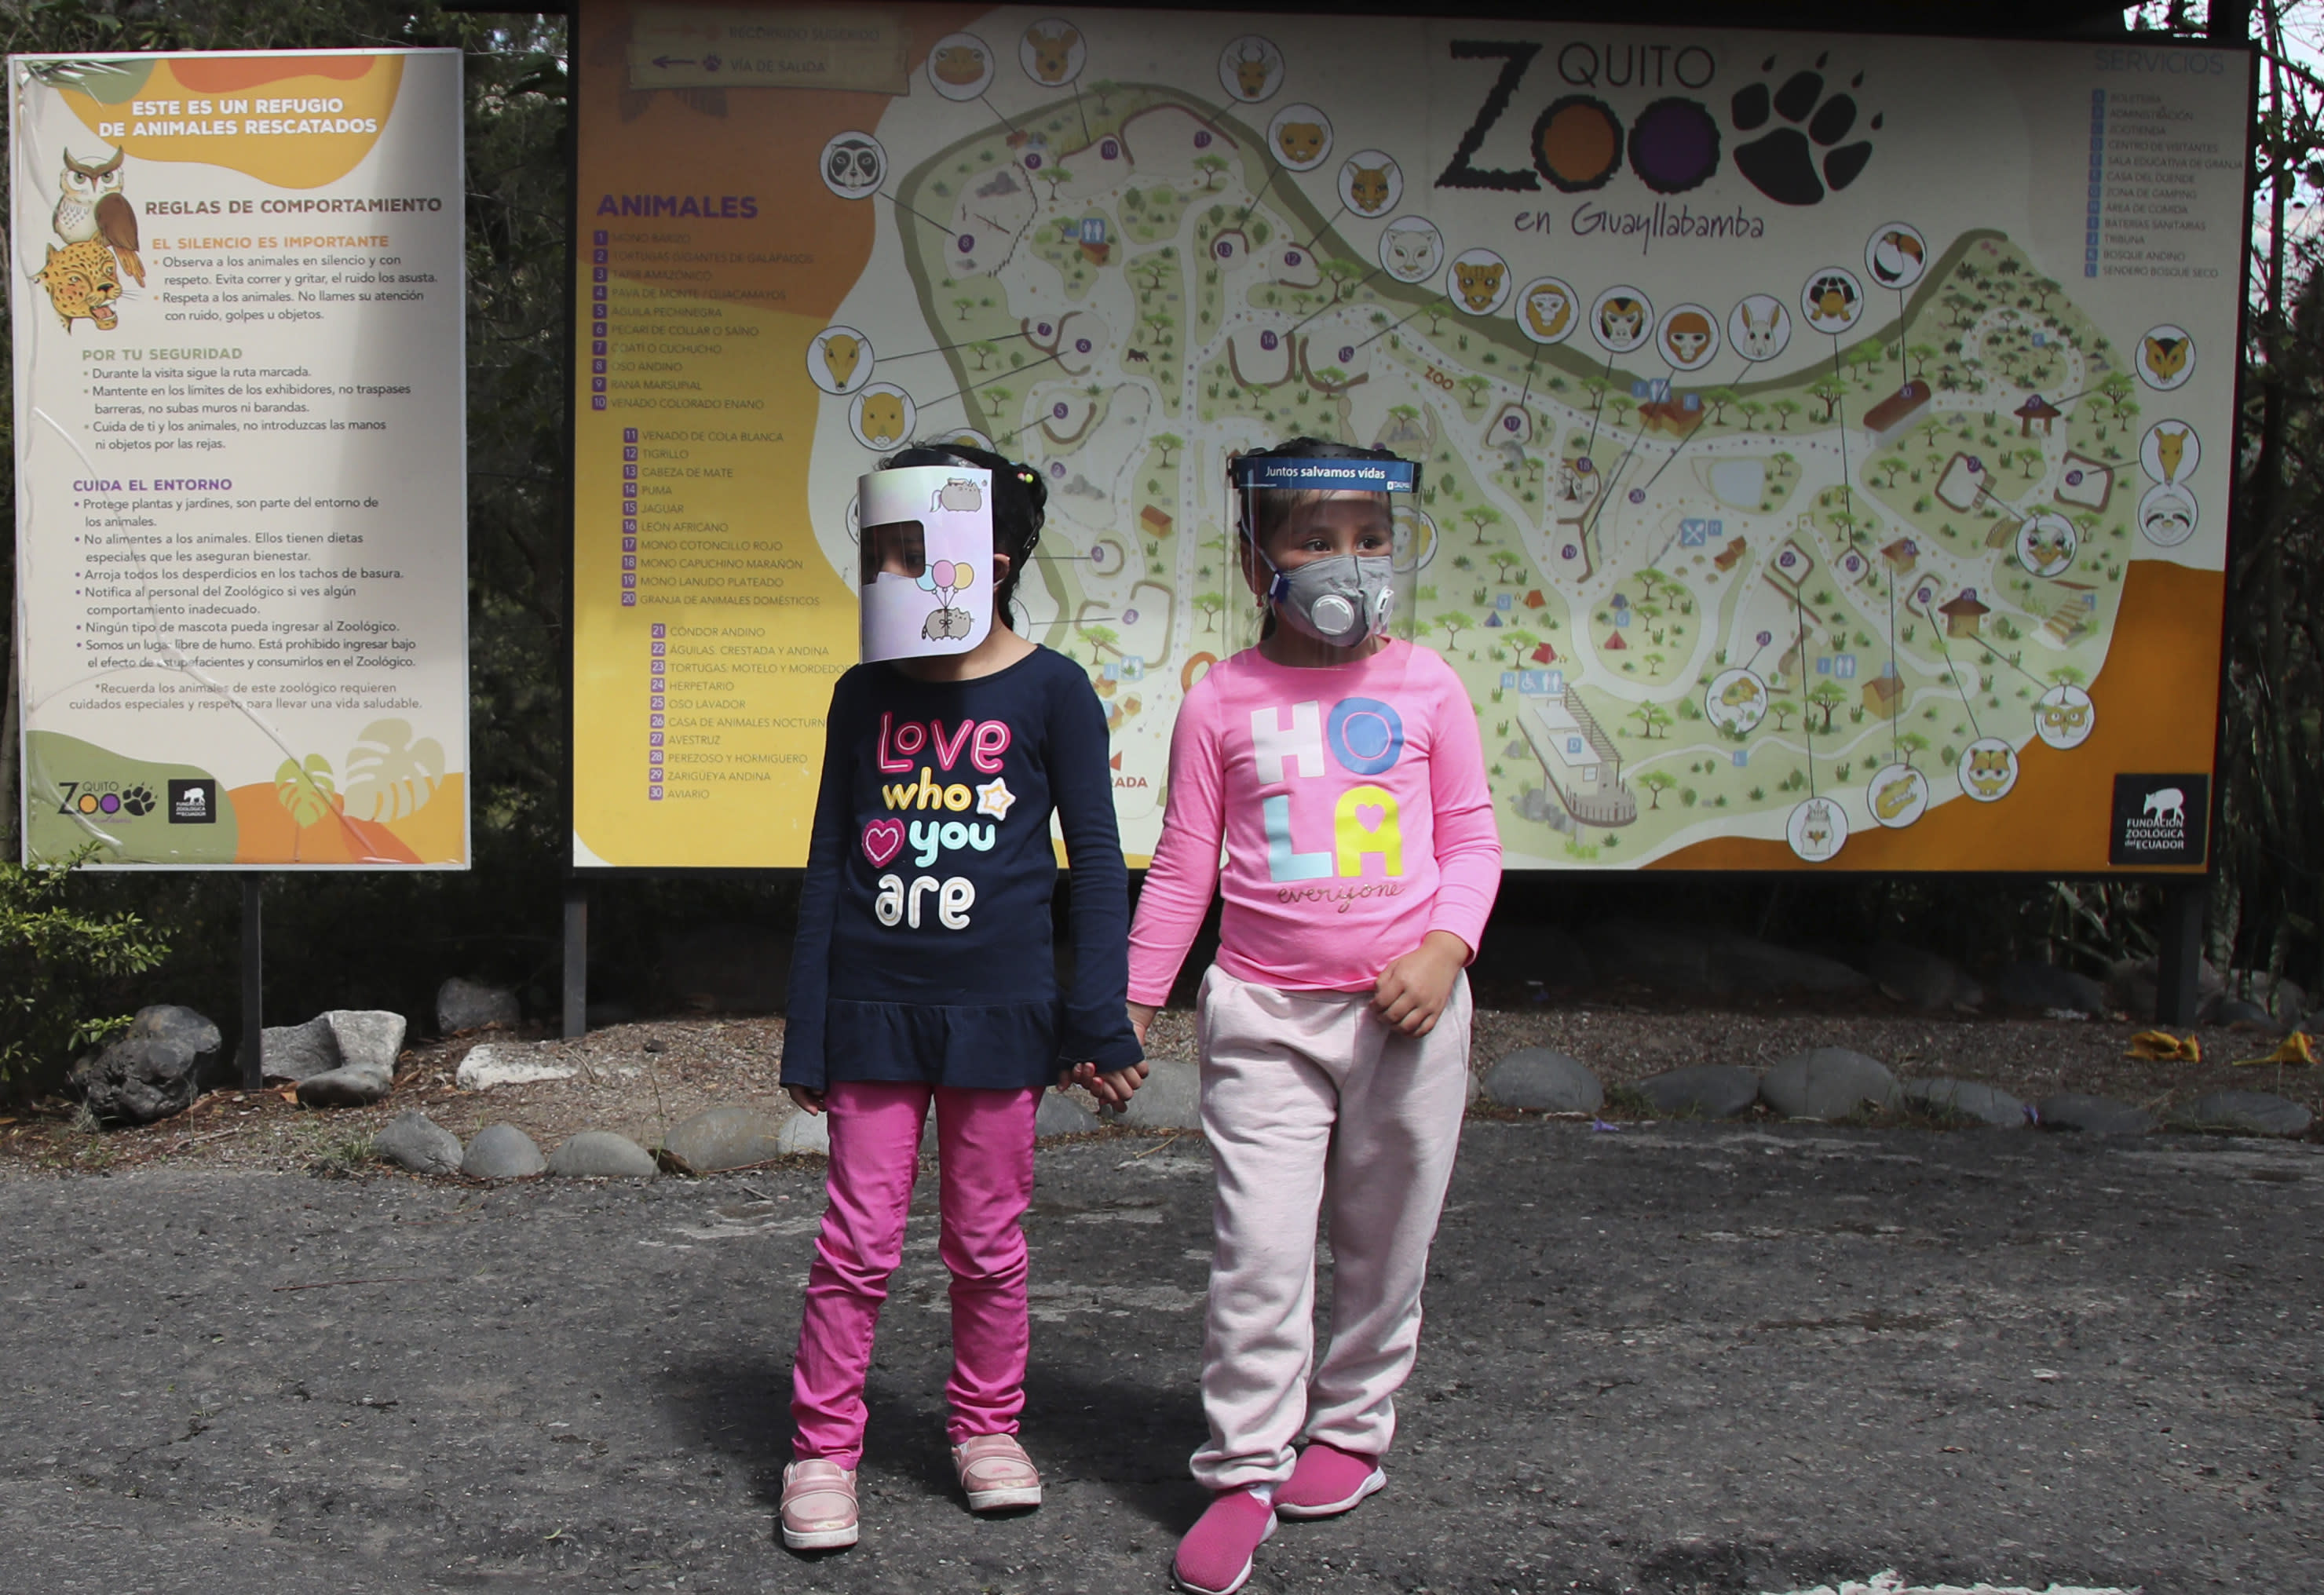 Girls wearing face shields as a preventive measure against the new coronavirus wait for their parents to enter the zoo on the outskirts of Quito, in Guayllabamba, Ecuador, Wednesday, July 8, 2020. The zoo is reopening but with strict new social distancing protocols for visitors due to the COVID-19 pandemic. (AP Photo/Dolores Ochoa)